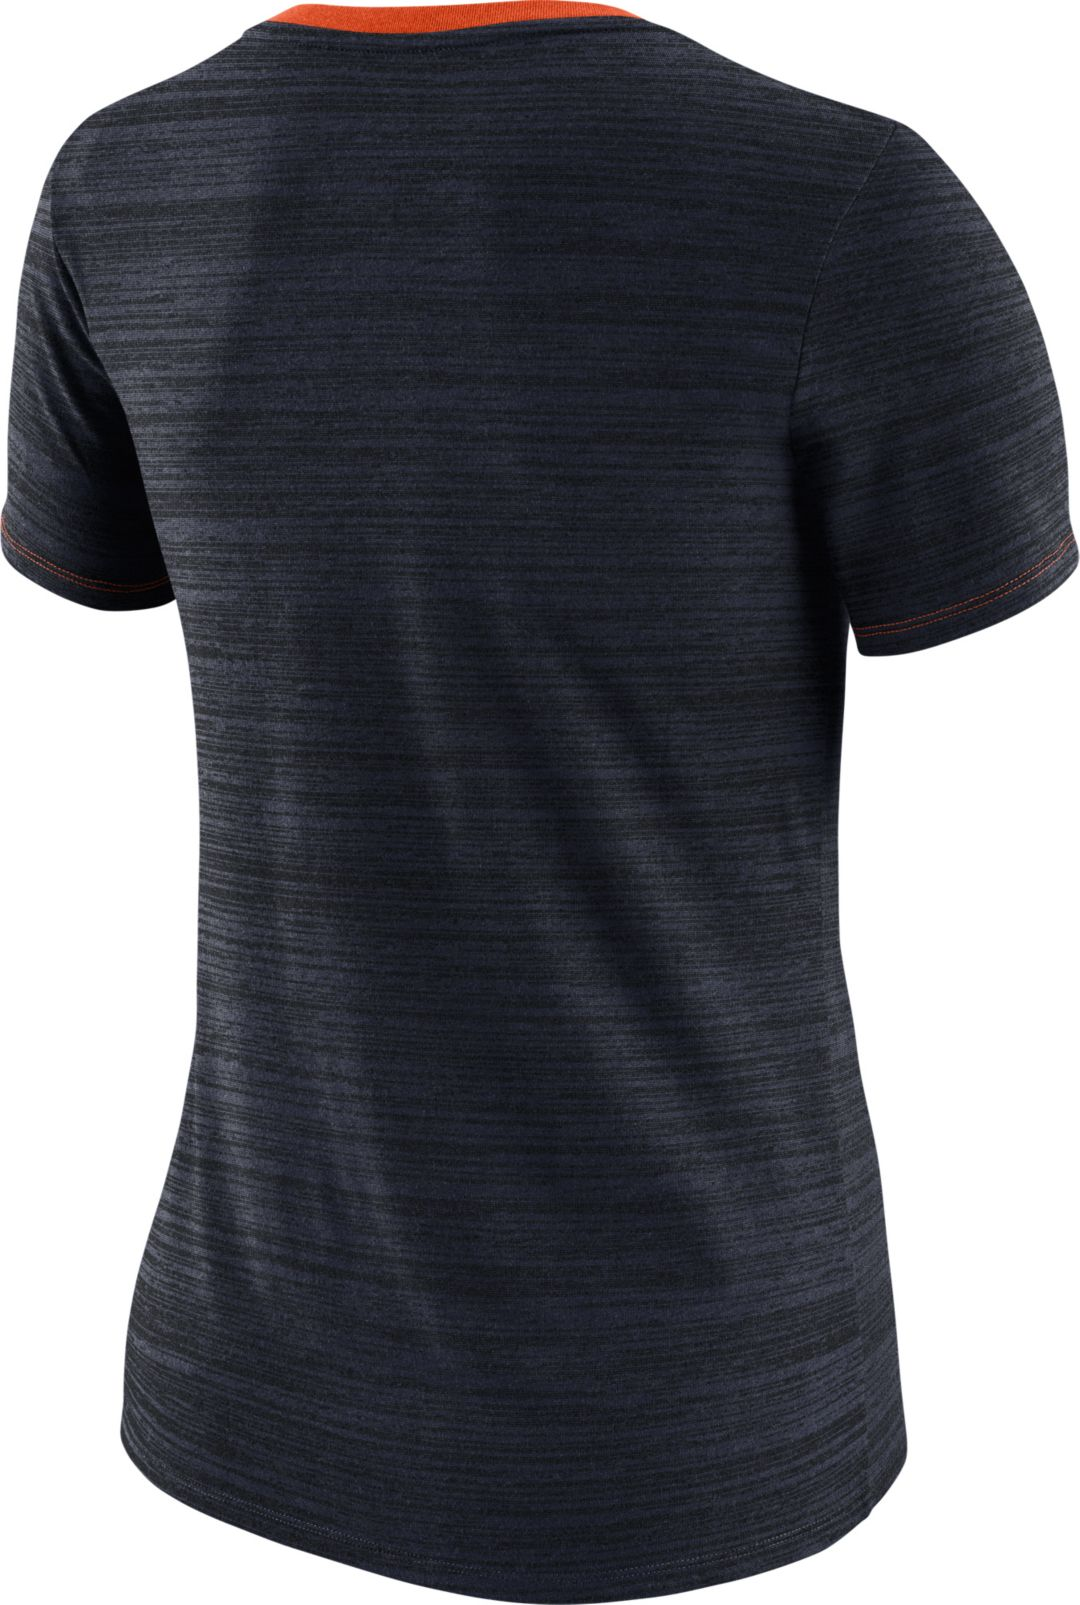 competitive price 12683 722c2 Nike Women's Chicago Bears Legend Velocity Performance Navy T-Shirt